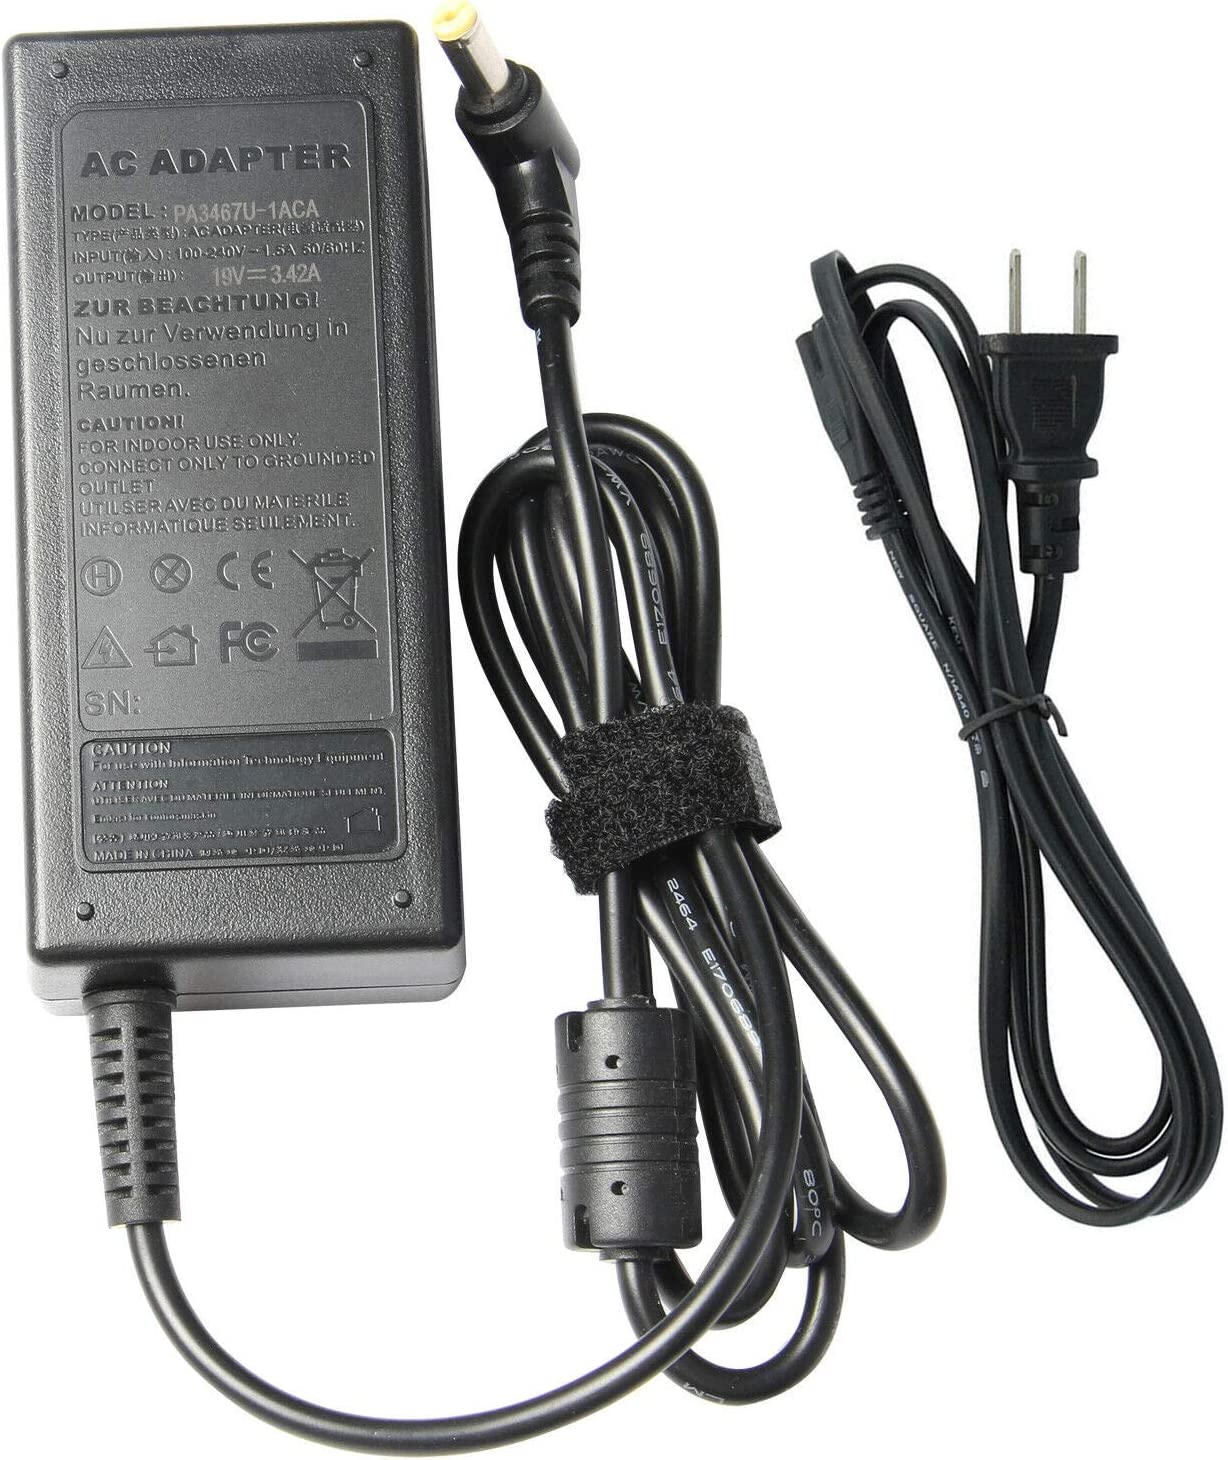 FYL AC Adapter Cord Battery Charger for Acer Aspire 5736Z-4418 5551-2036 Laptop